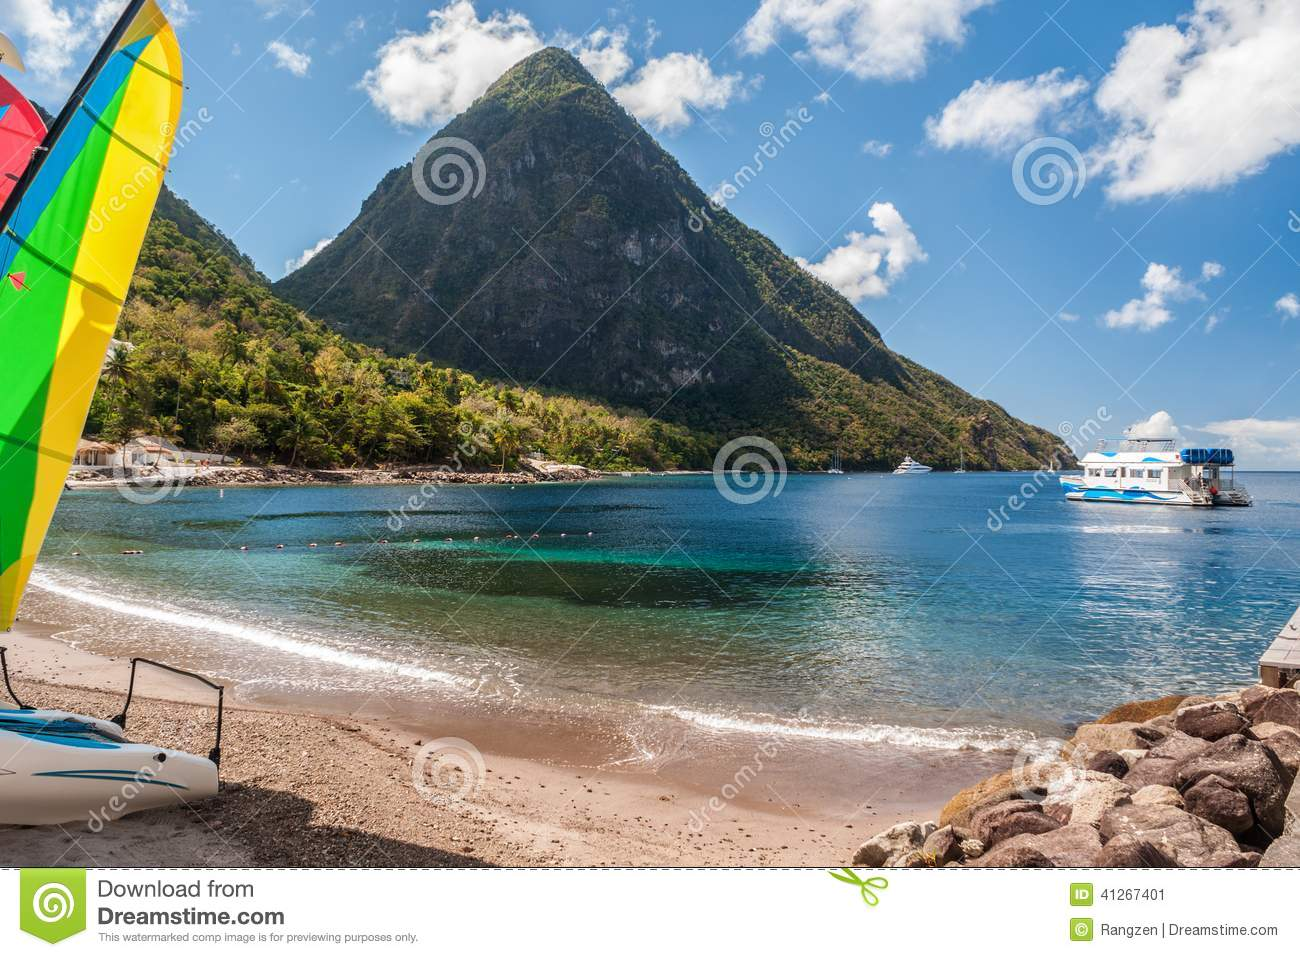 beach on st lucia stock image 41267401. Black Bedroom Furniture Sets. Home Design Ideas